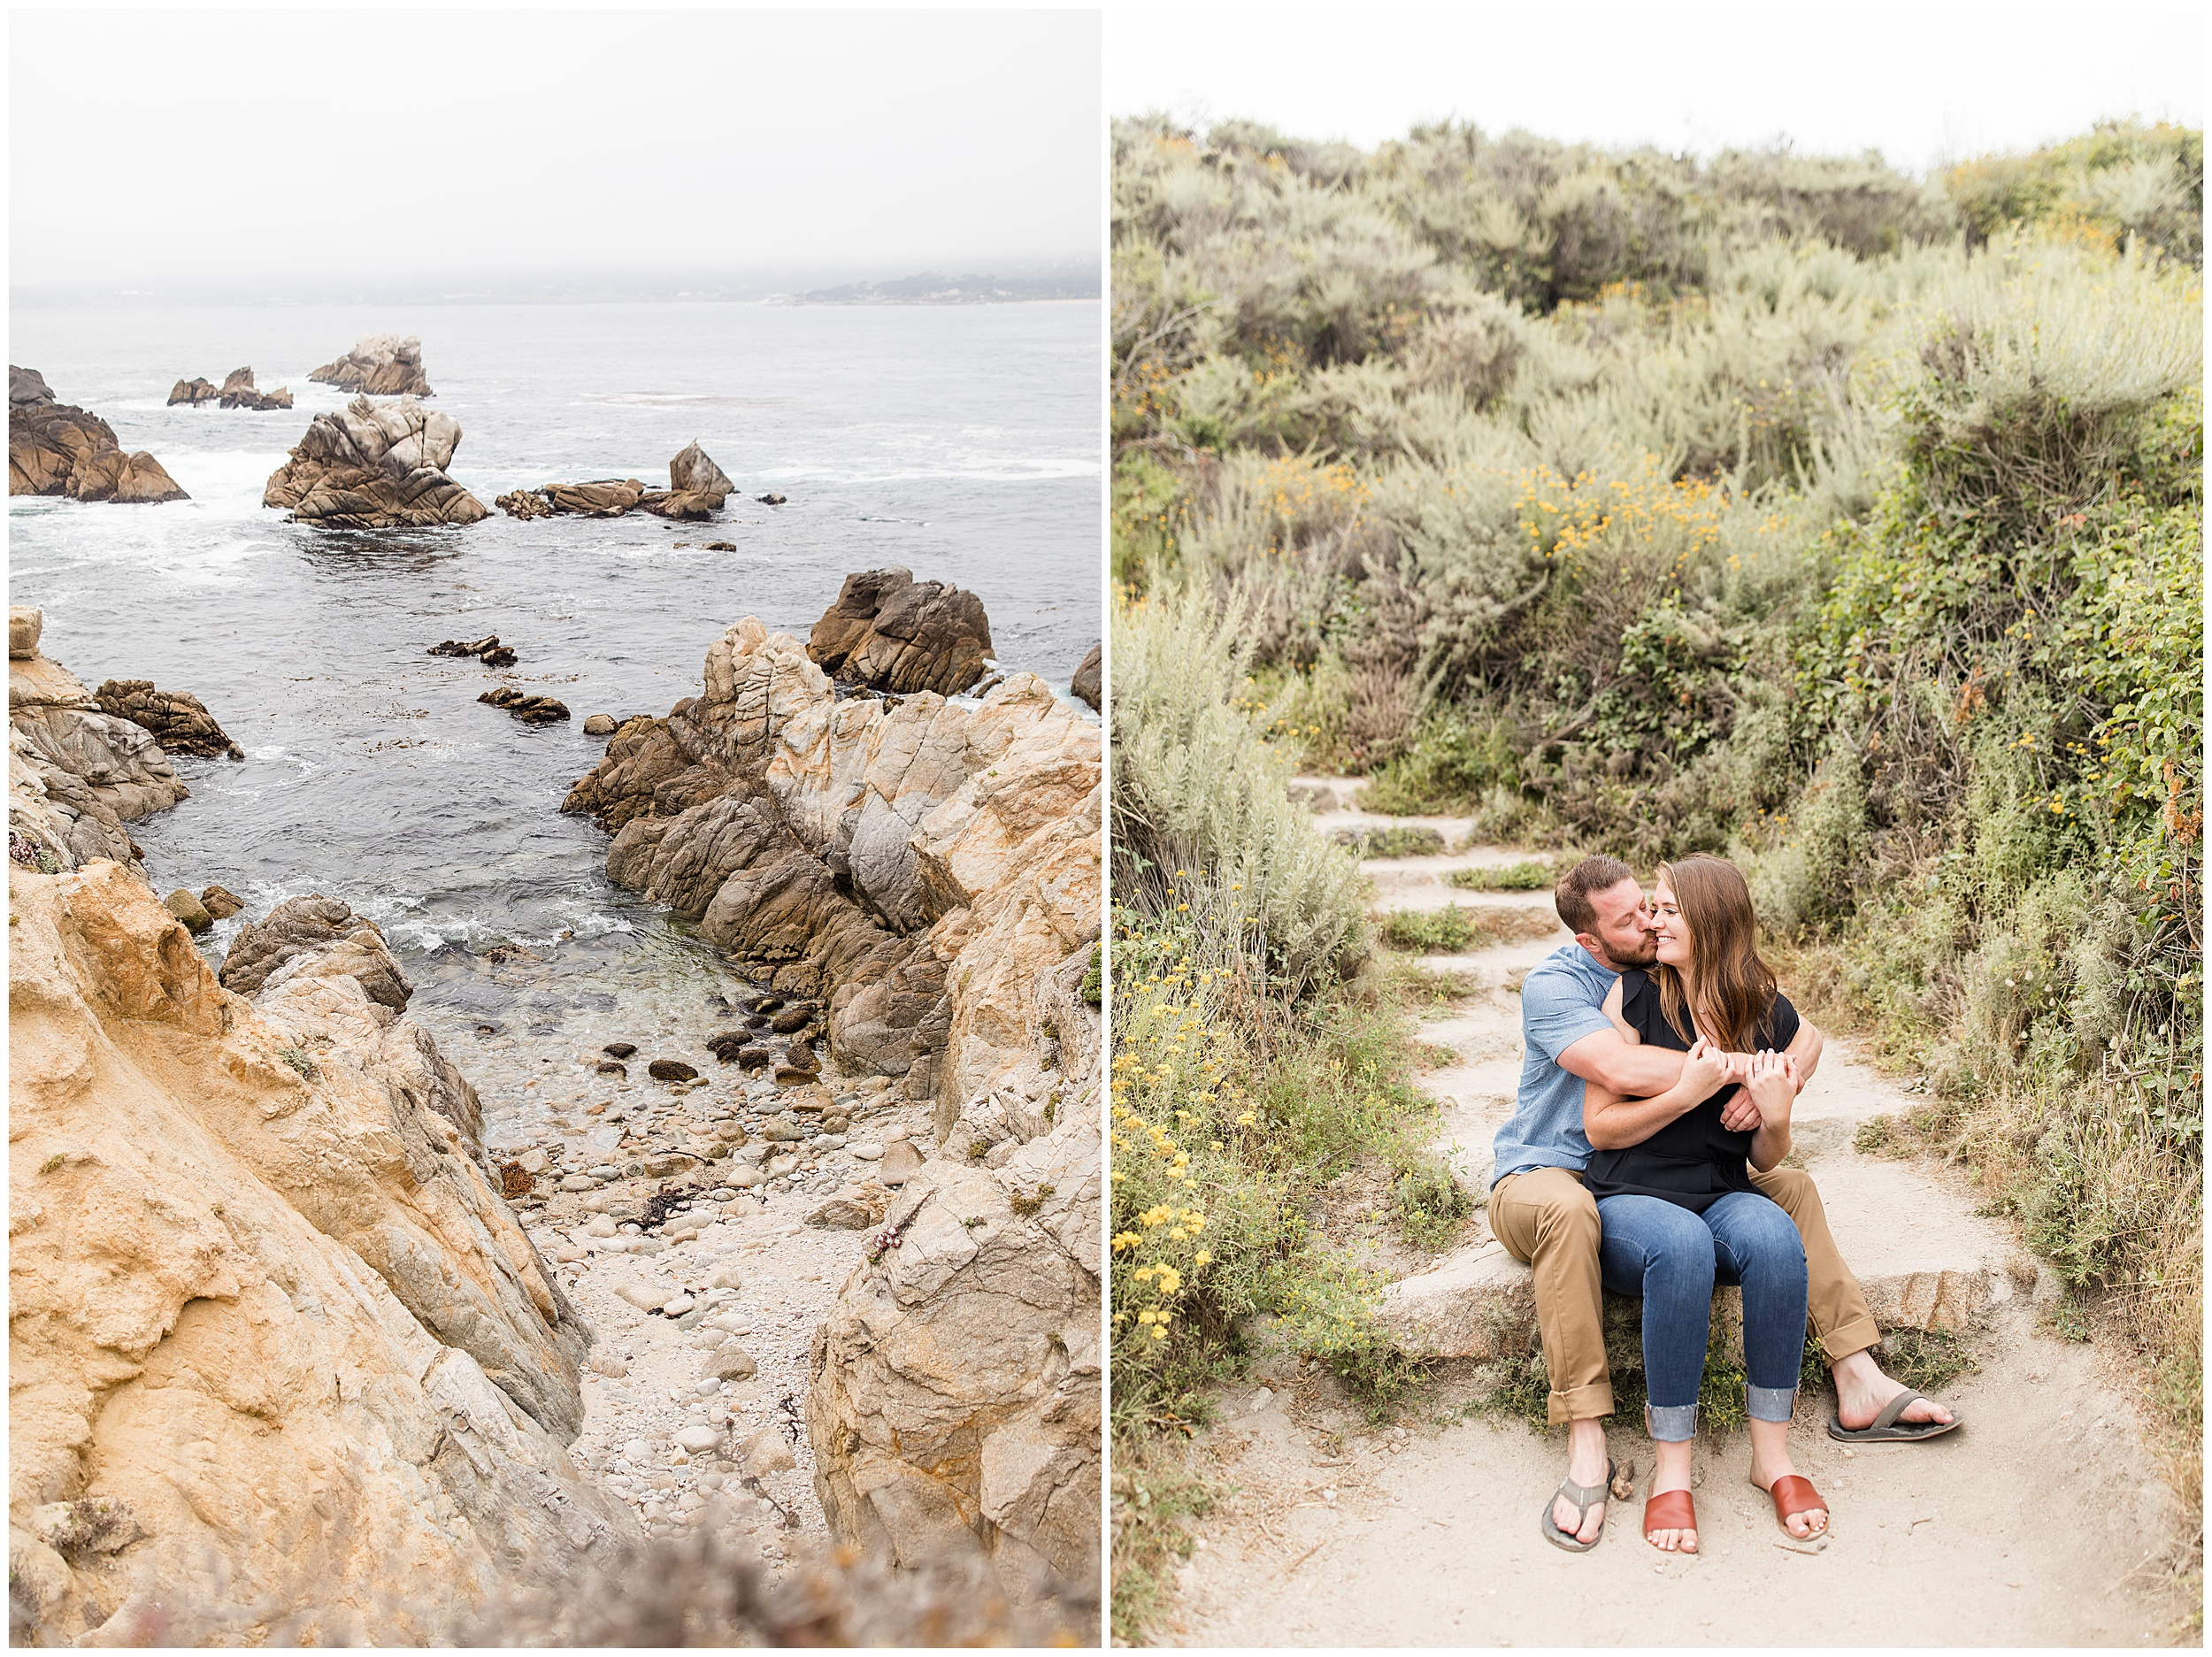 2019 carmel by the sea surprise proposal engagement session wedding photographer angela sue photography_0014.jpg